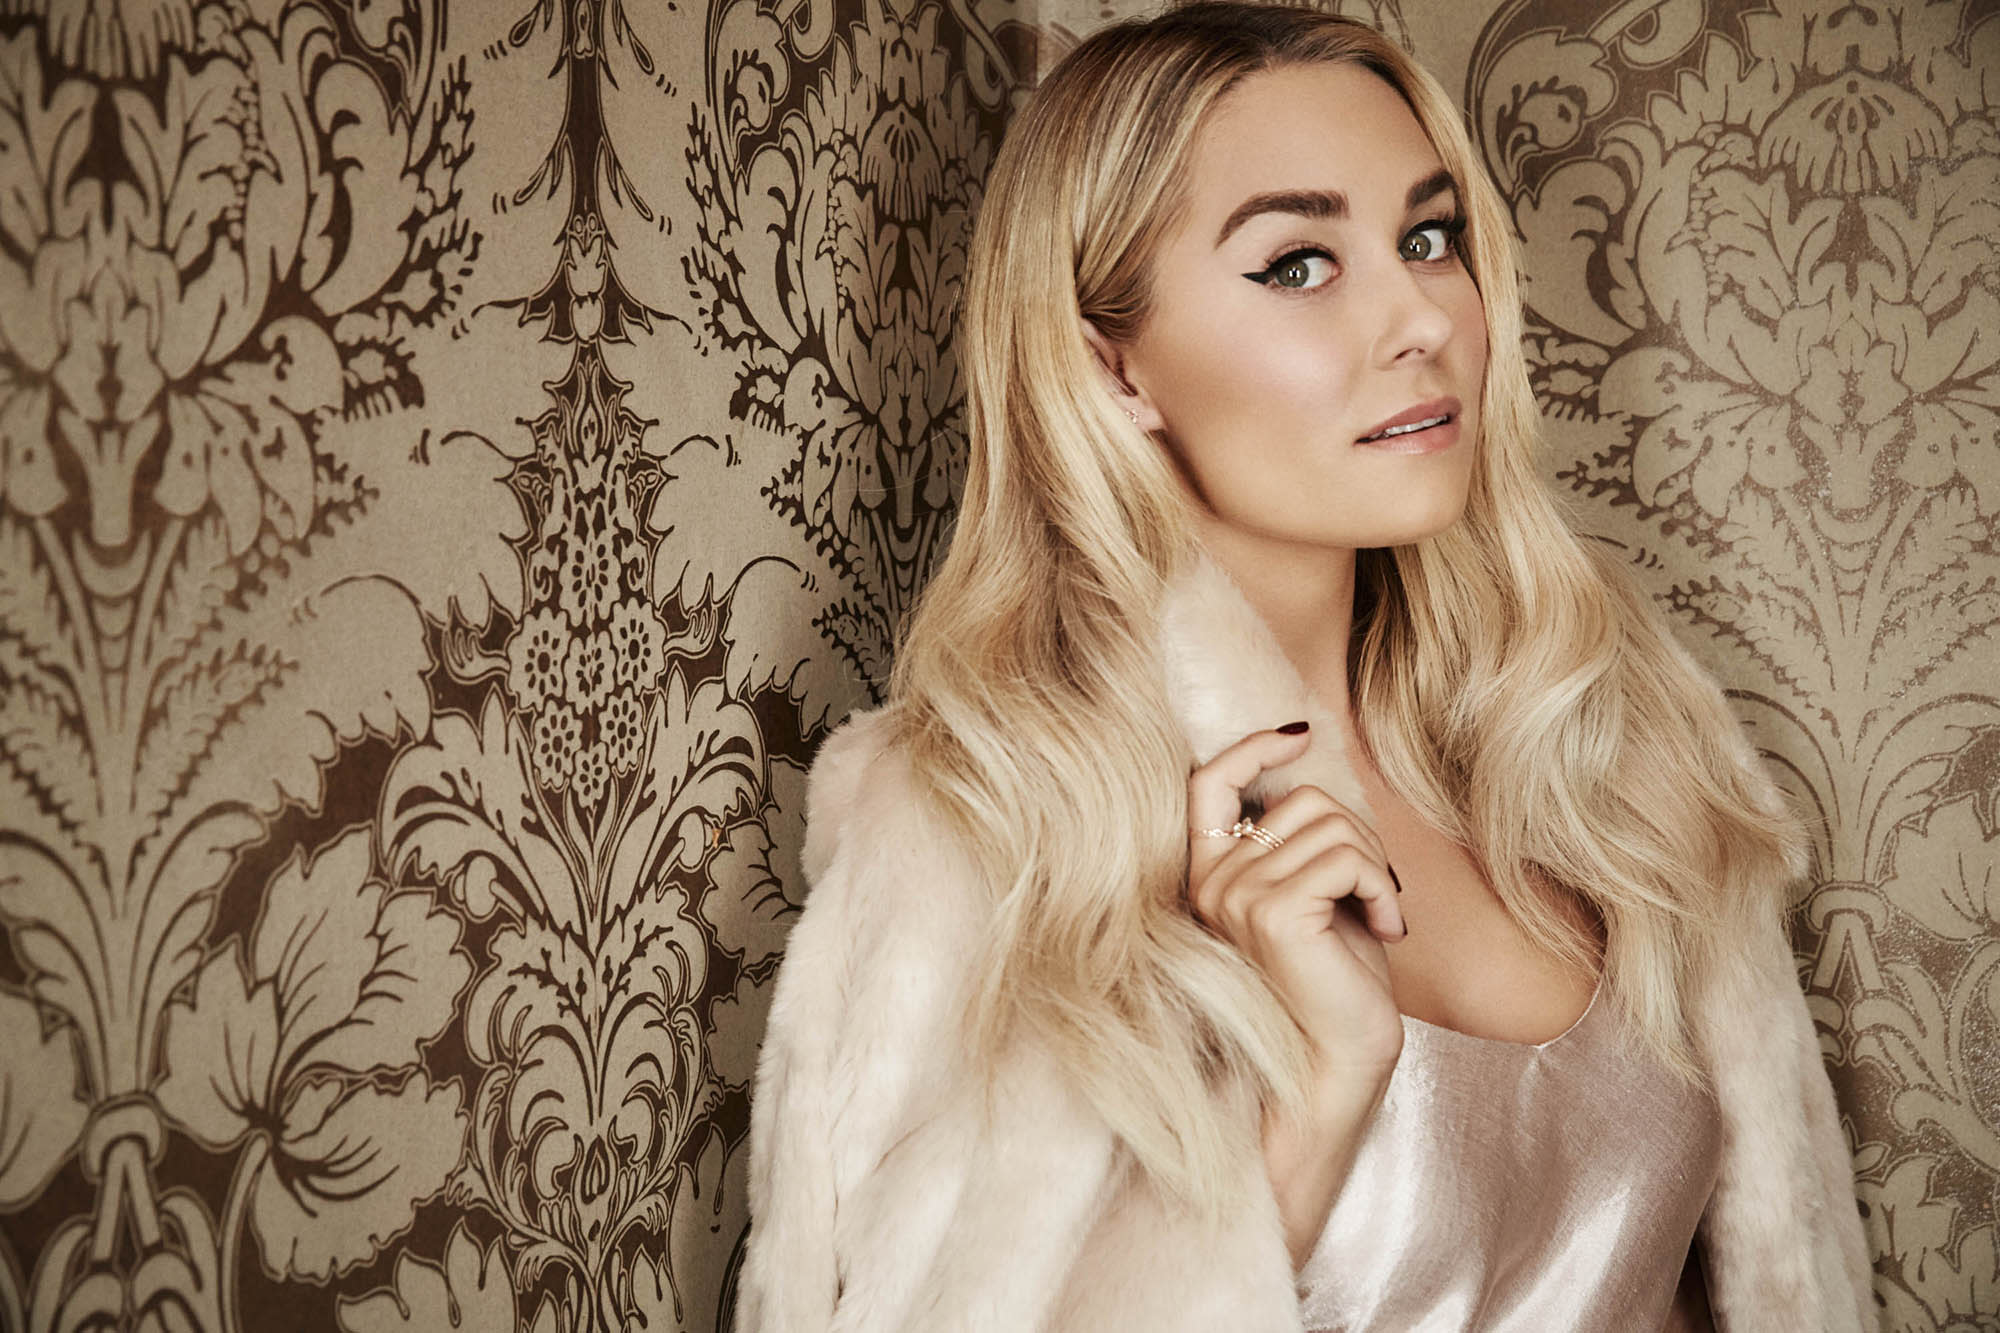 062b0e29c6 Lauren Conrad plus-size clothing blogger Loey Lane